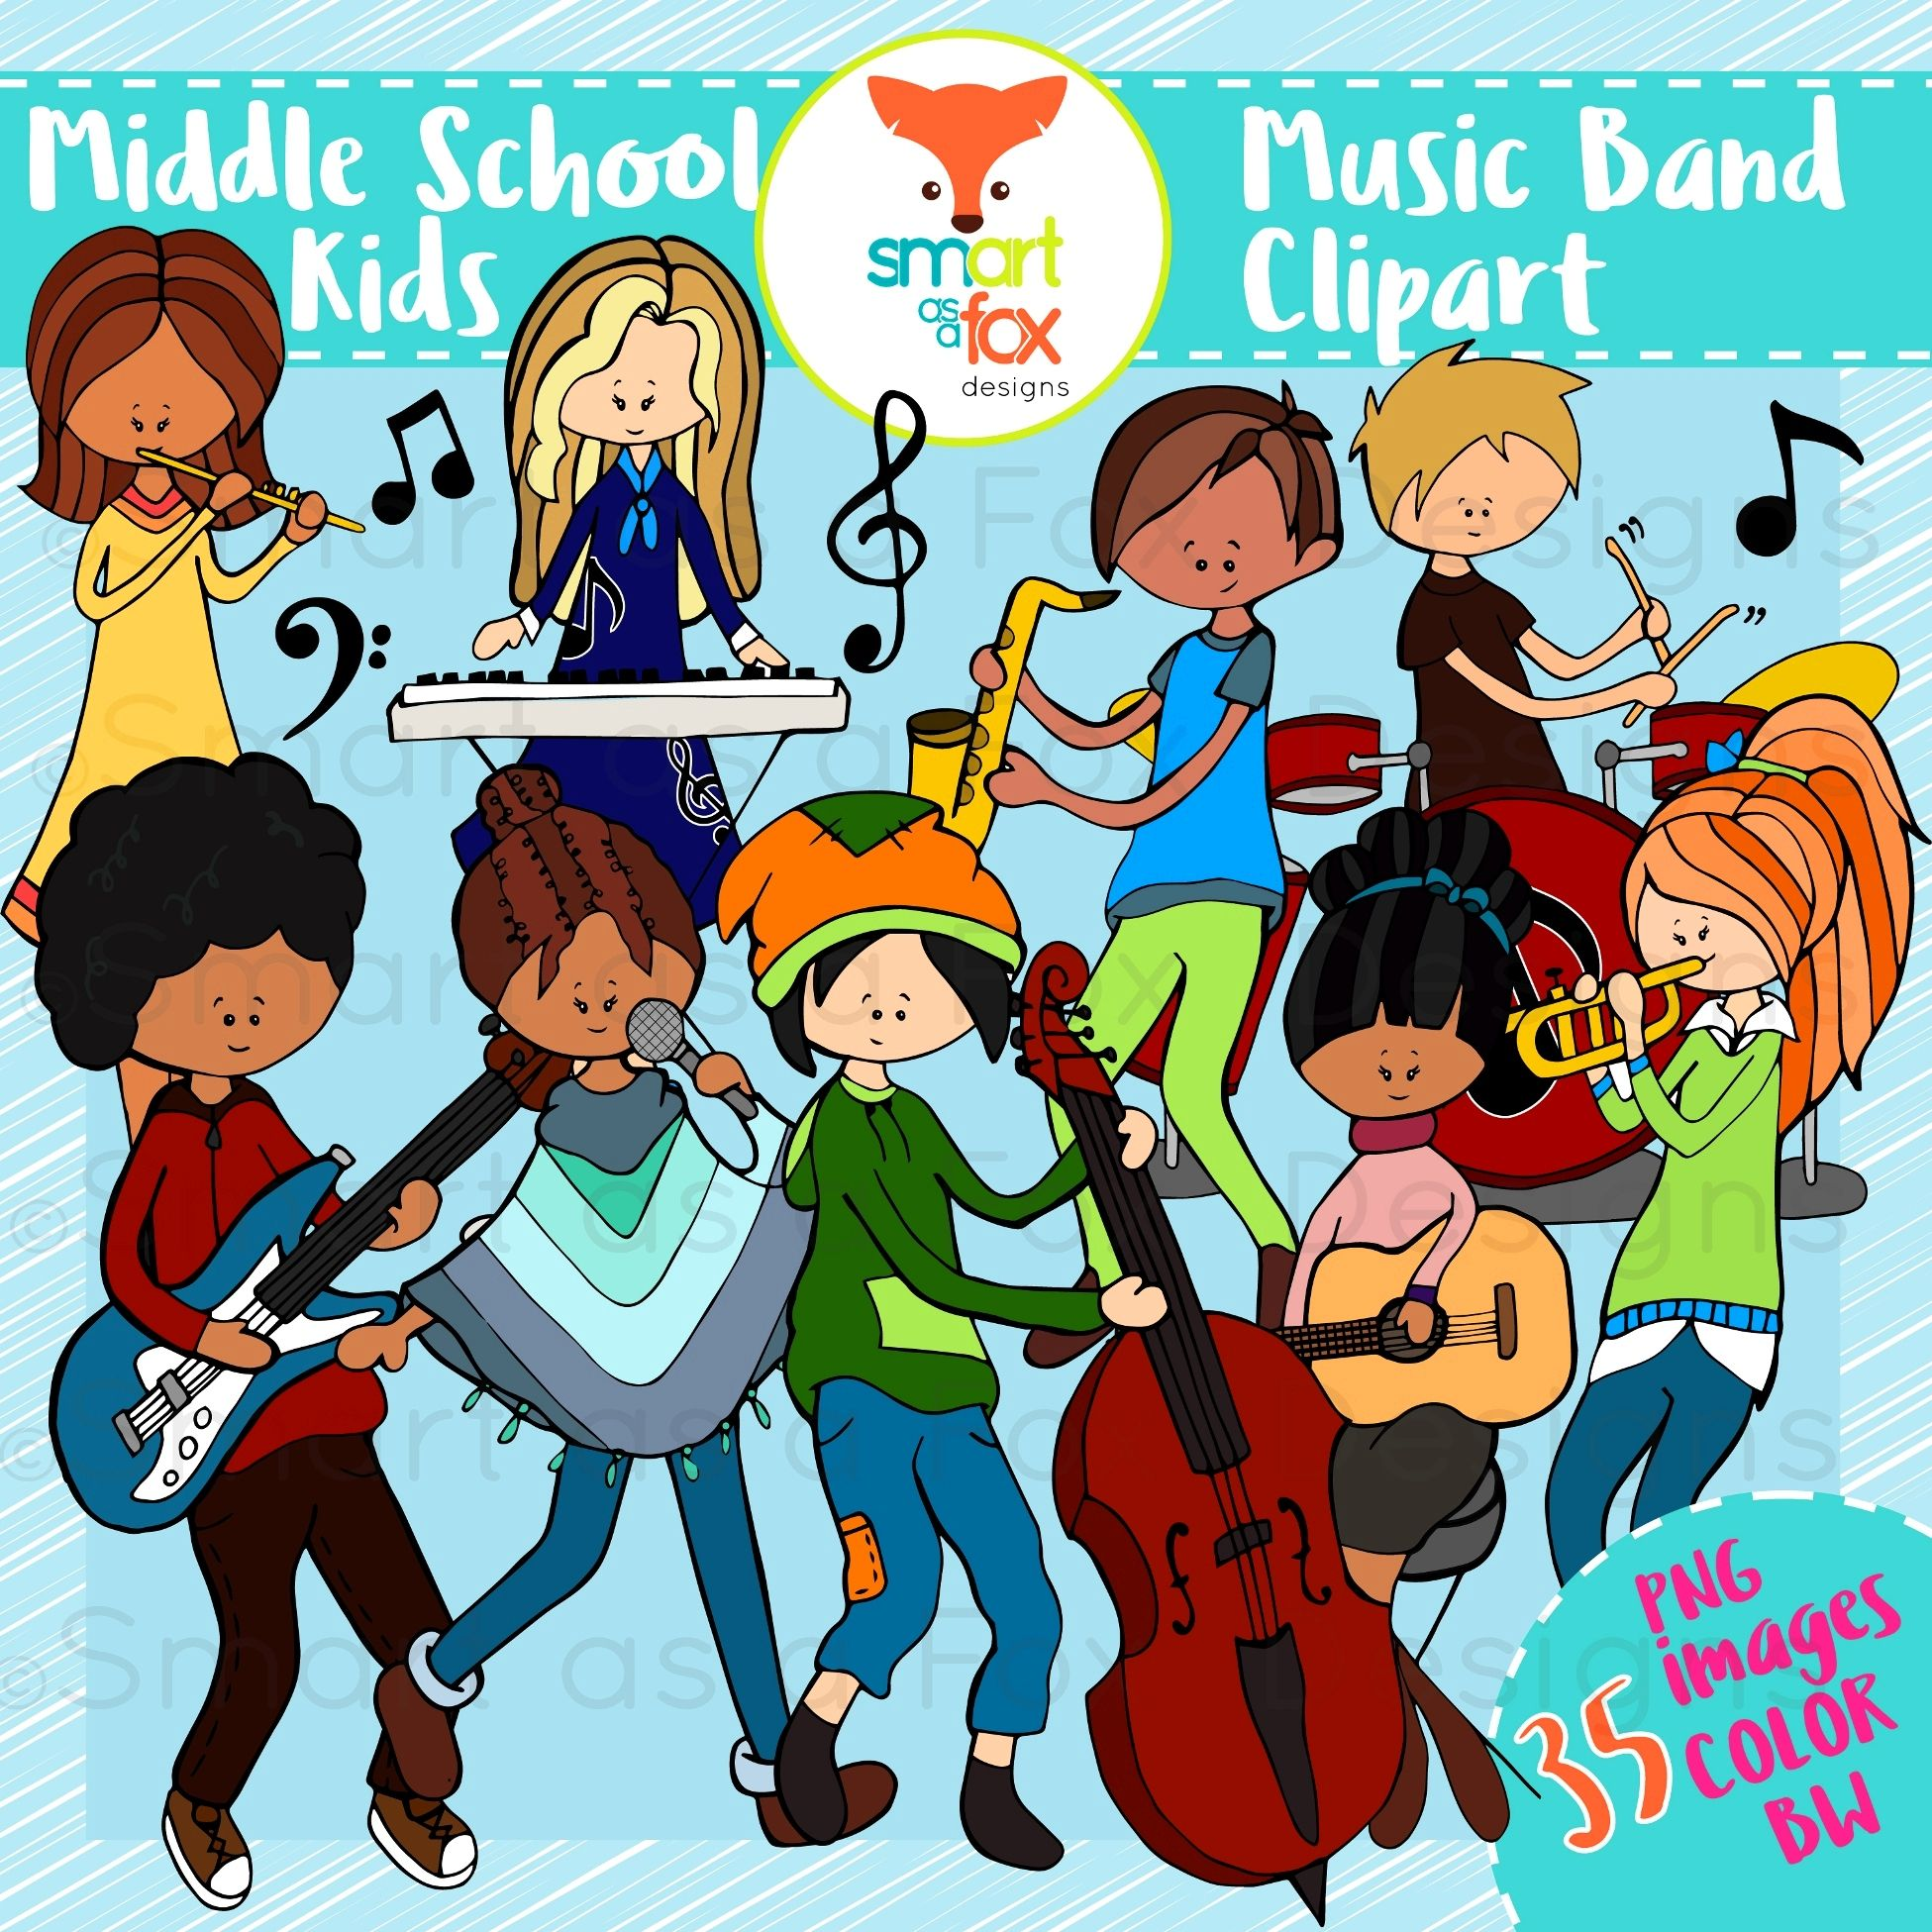 Middle School Kids Music Band Clipart Personal and.